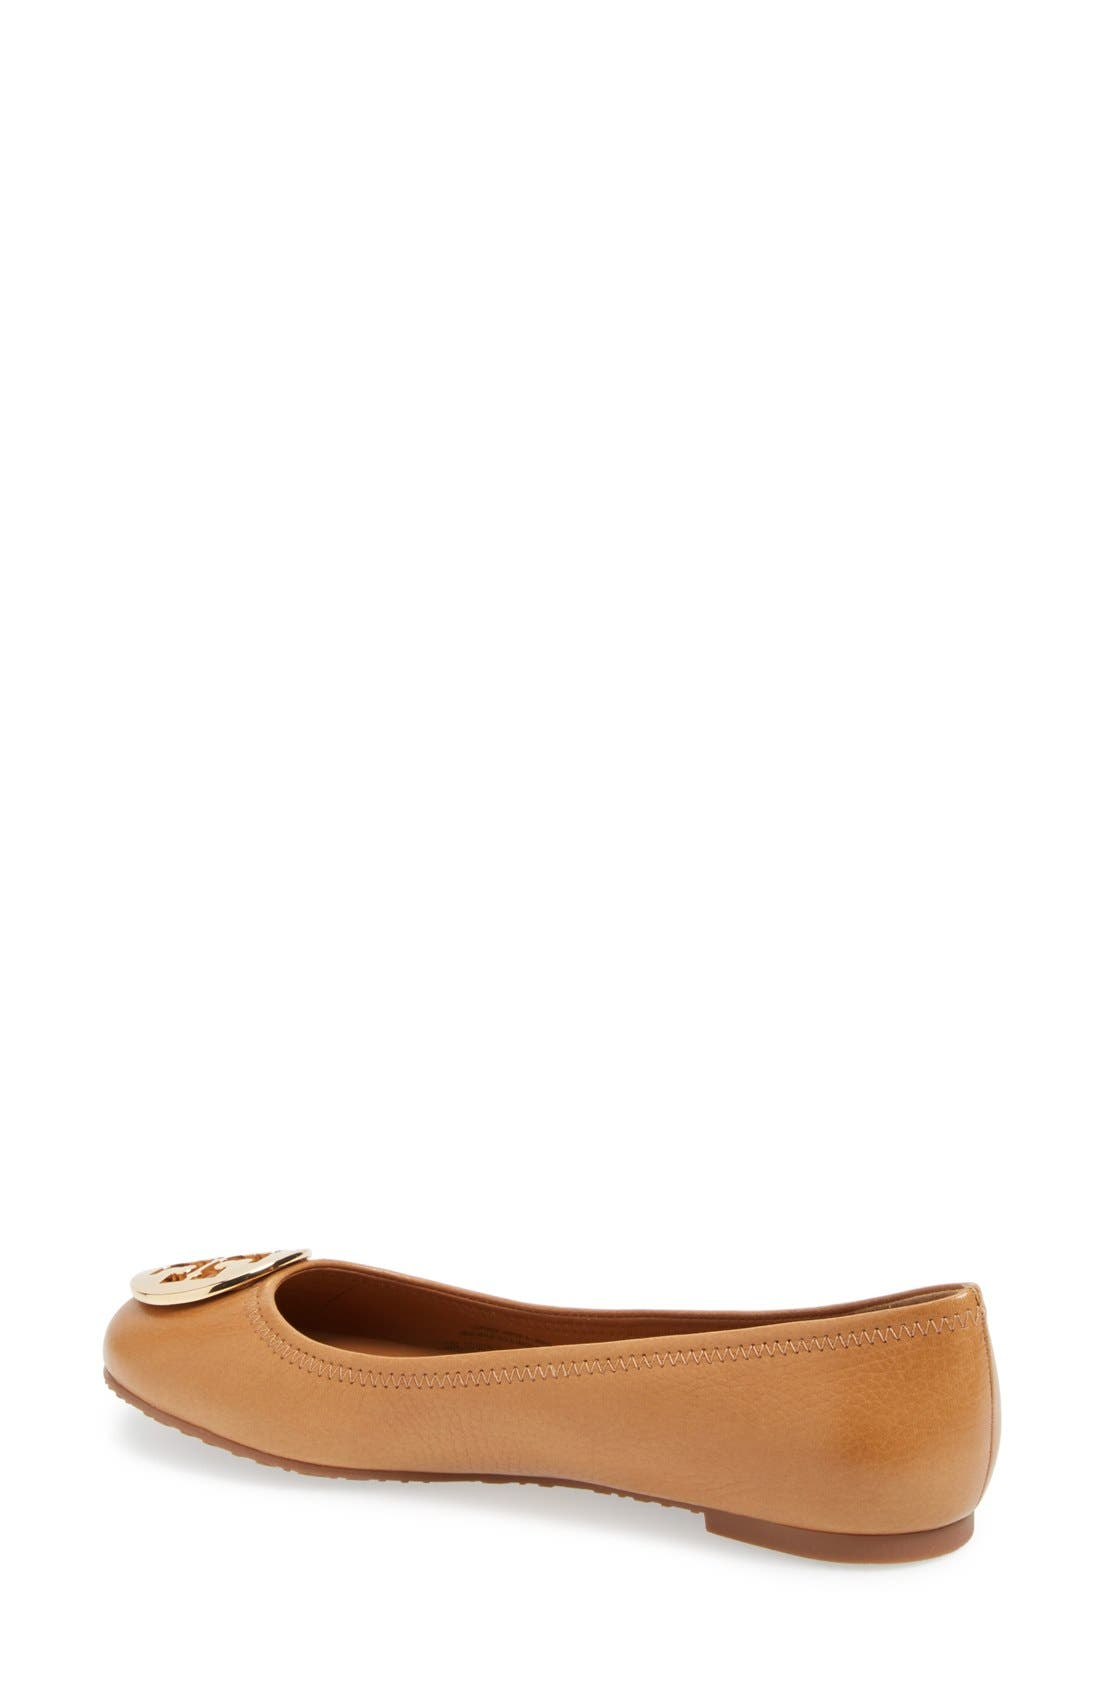 Alternate Image 2  - Tory Burch Reva Ballerina Flat (Women)